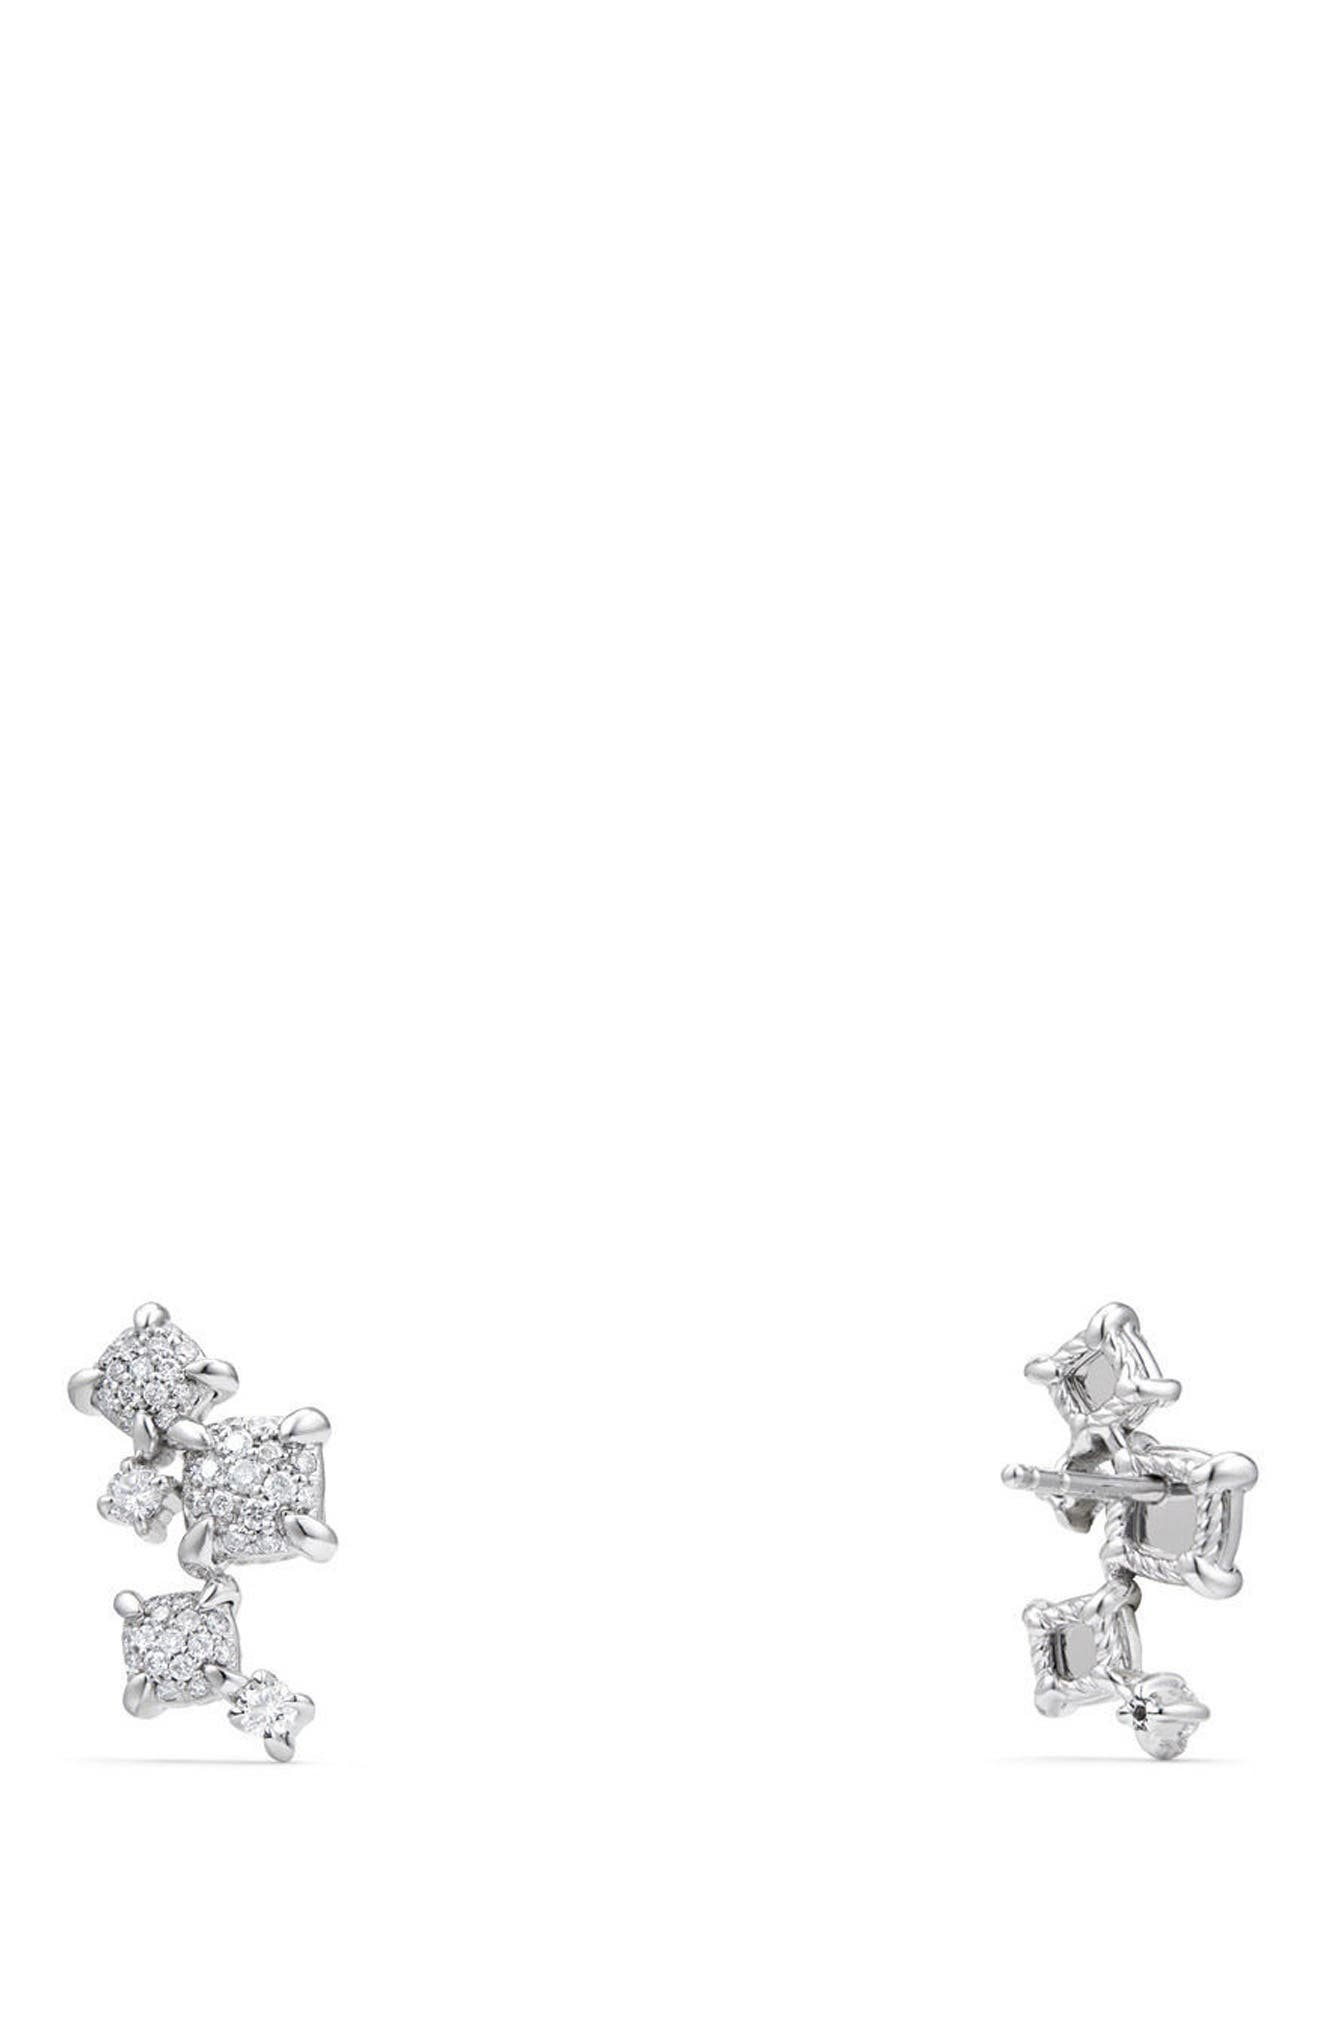 Petite Châtelaine Climber Earrings in 18K Gold with Diamonds,                             Alternate thumbnail 3, color,                             WHITE GOLD